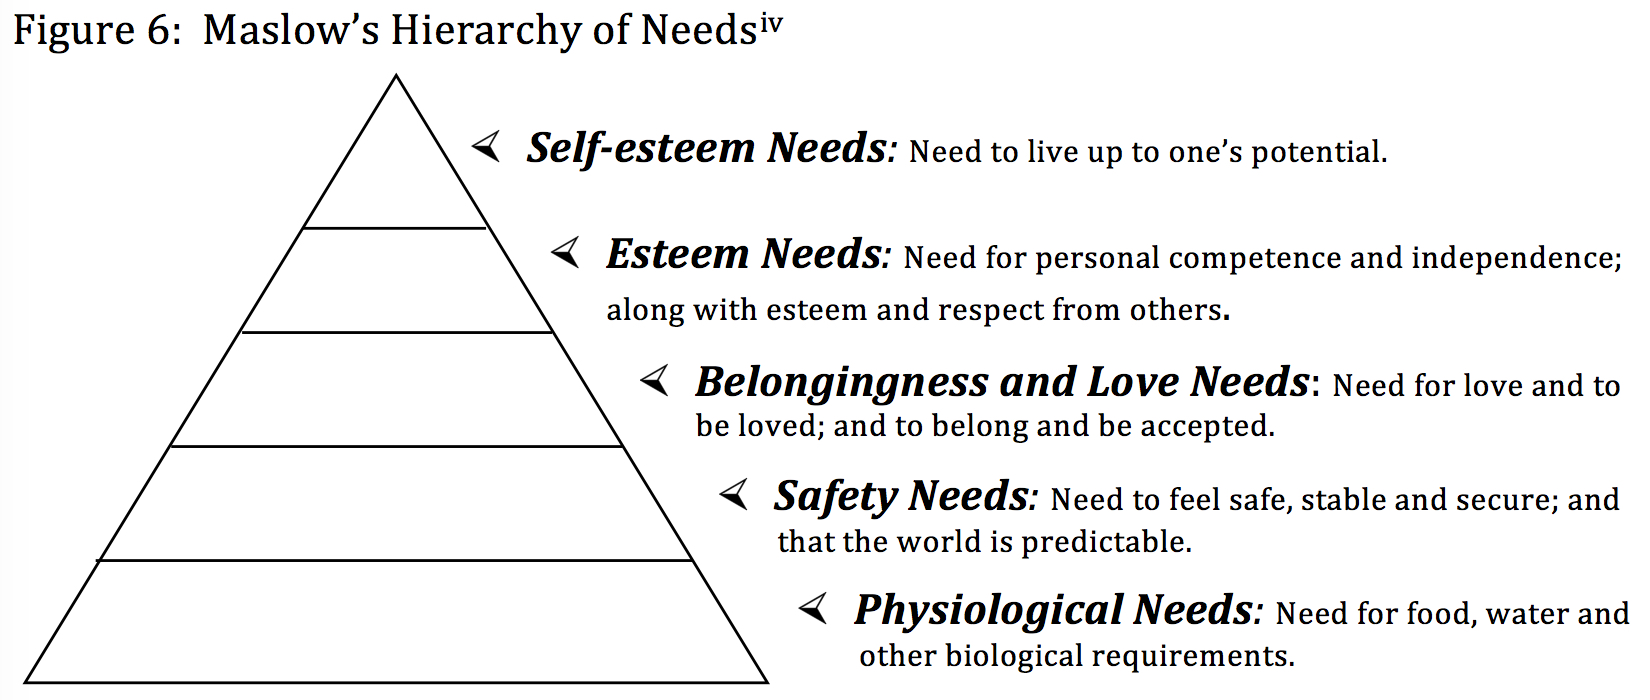 maslows heirarchy essay Open document below is an essay on alive (1993) maslow hierchy of needs from anti essays, your source for research papers, essays, and term paper examples.